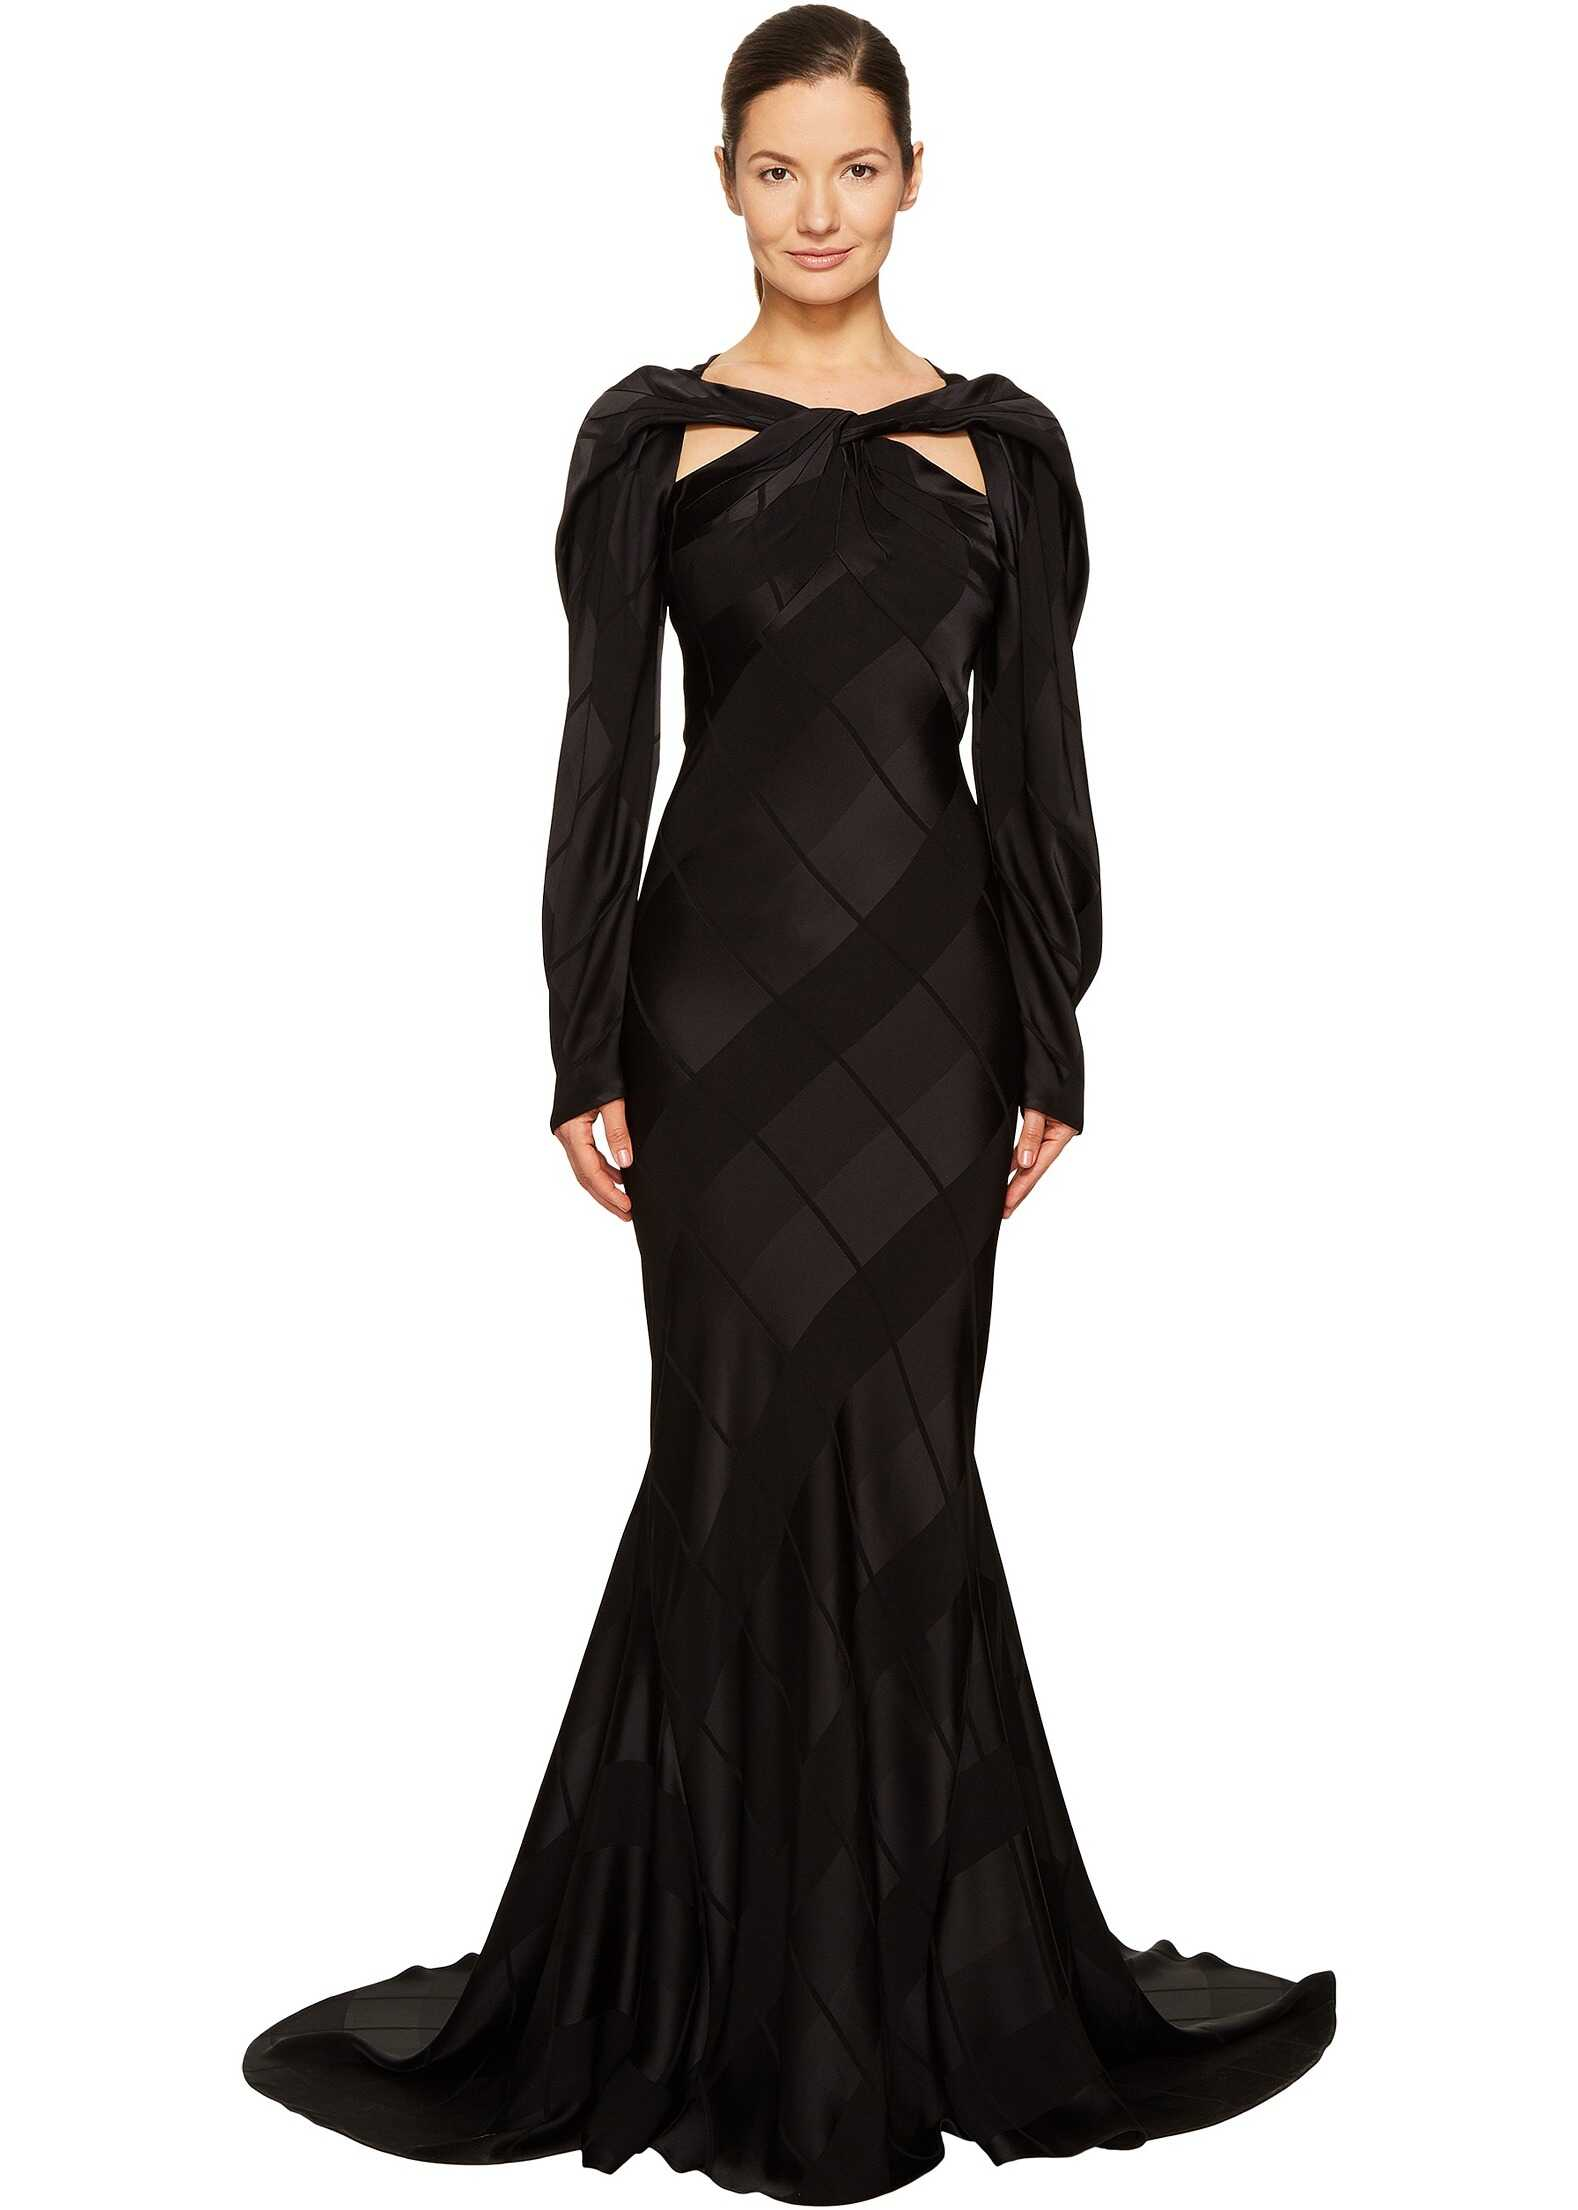 Zac Posen Satin Crepe Jacquard Long Sleeve Cut Out Gown Black